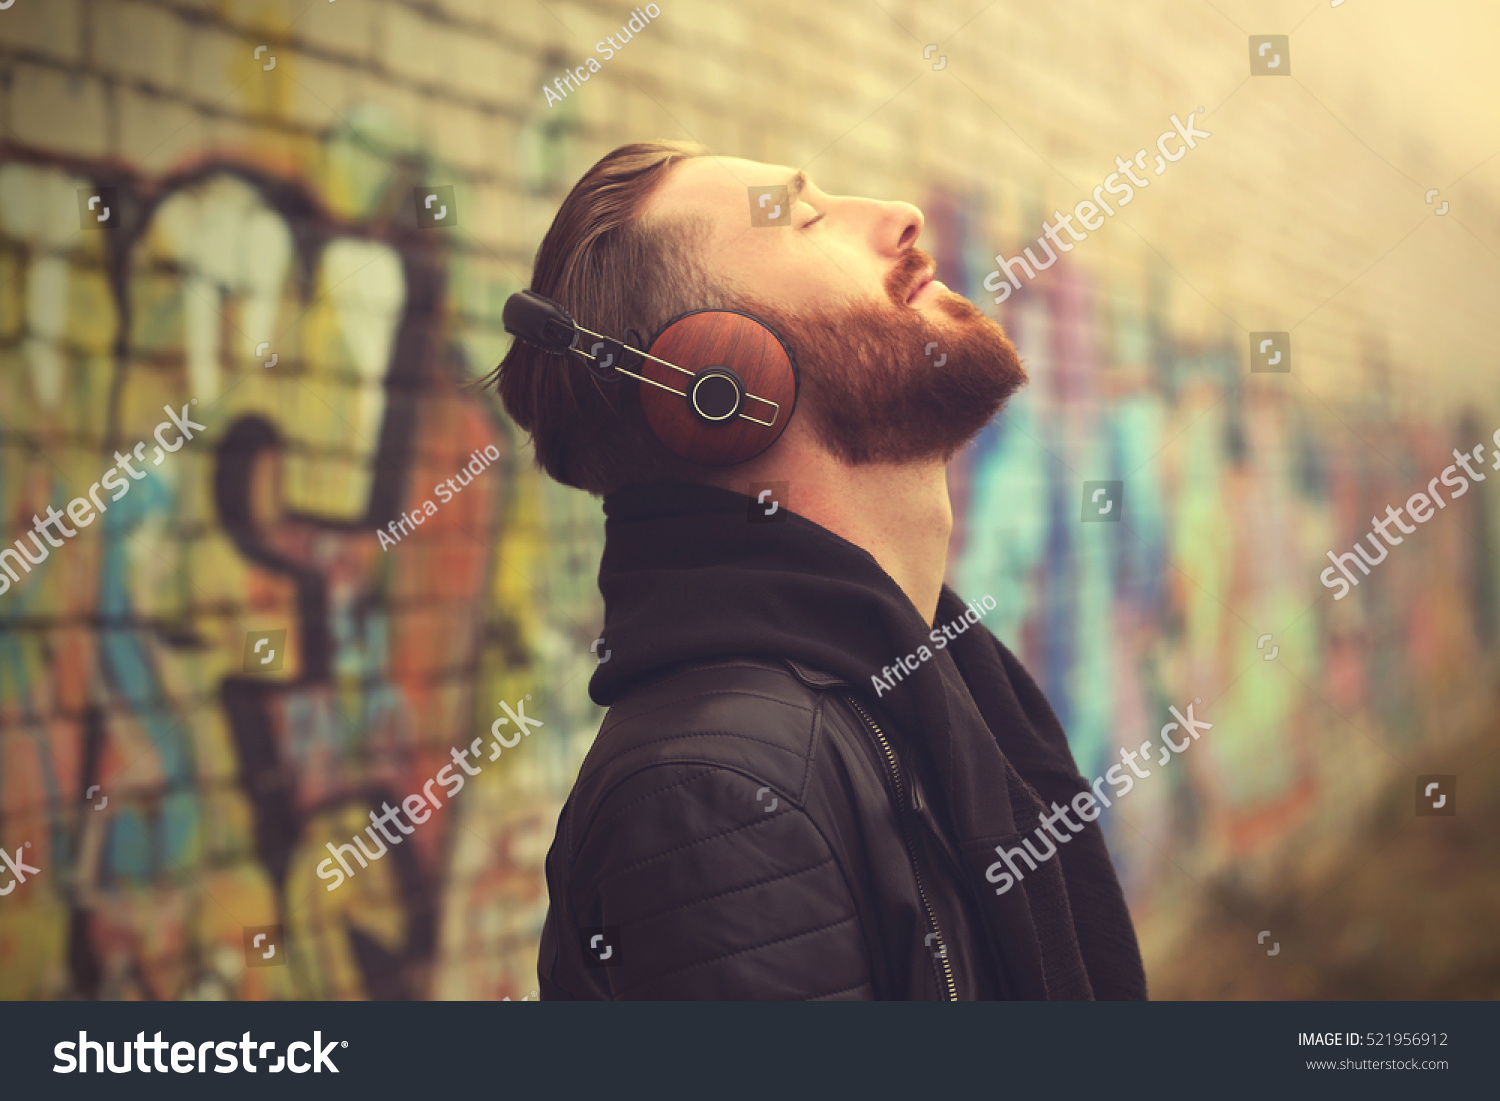 Handsome man in headphones listening to music outdoors #521956912